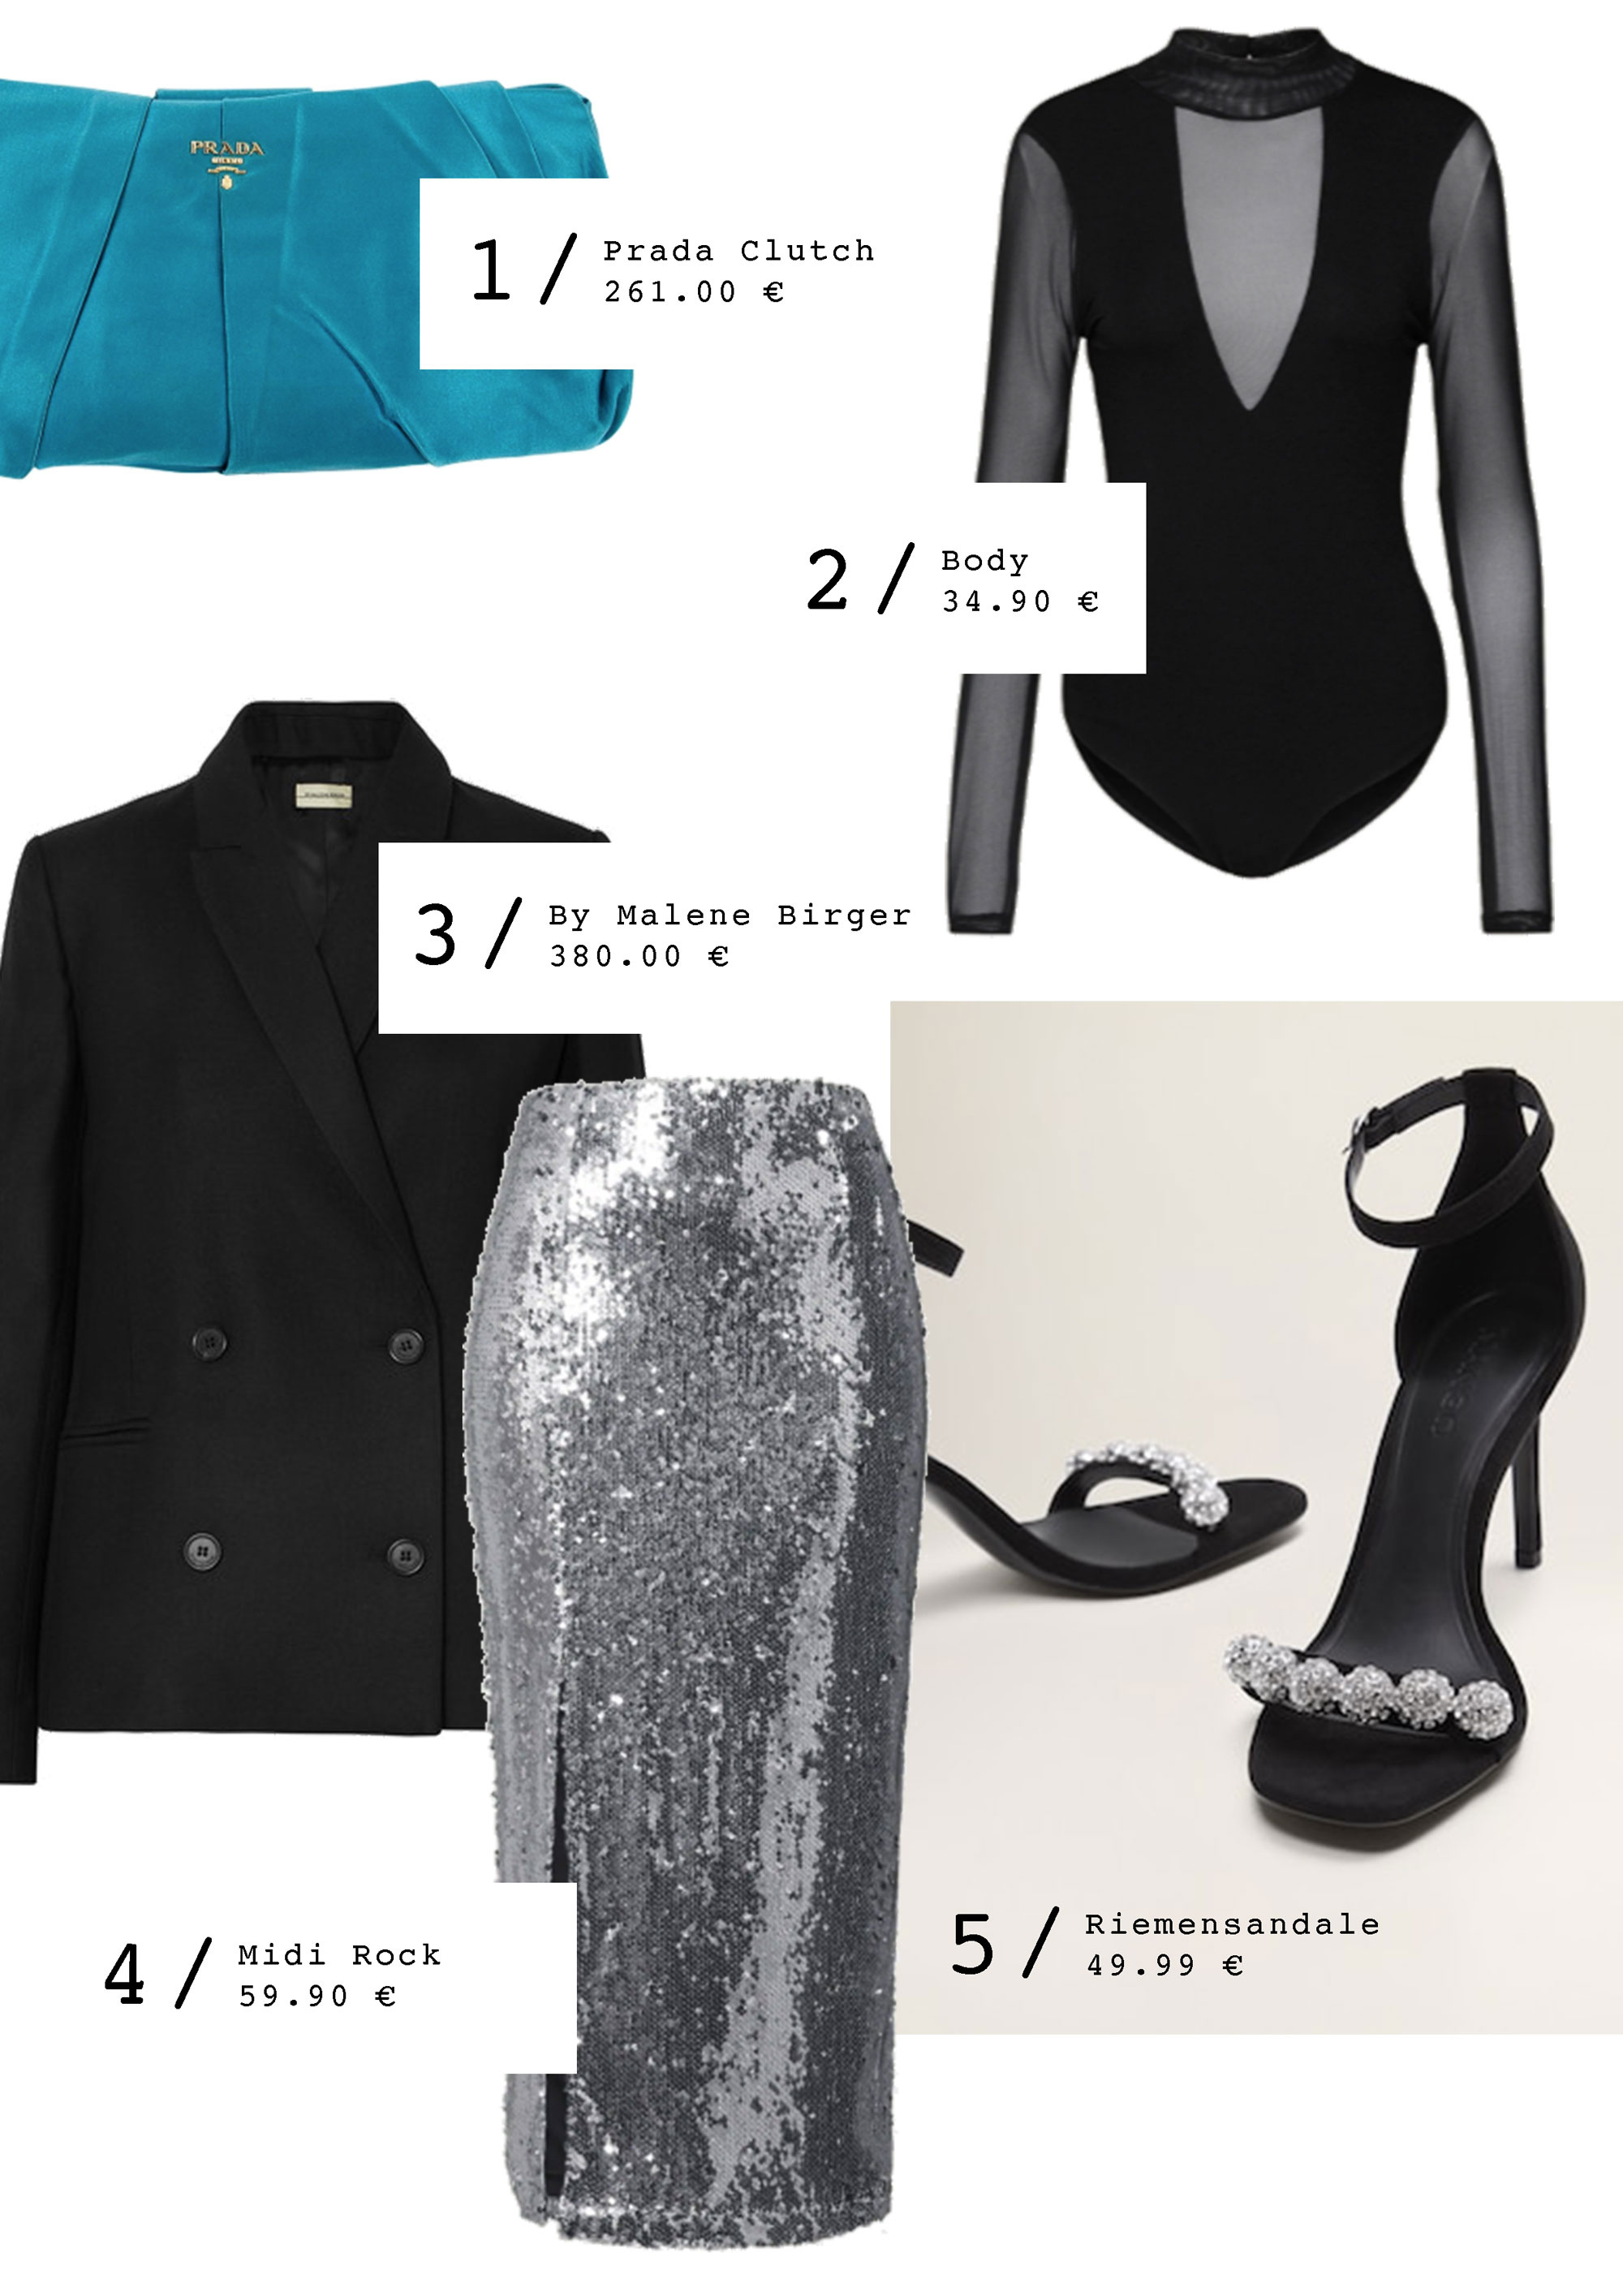 Black Friday Shopping Tipps - www.lesfactoryfemmes.com